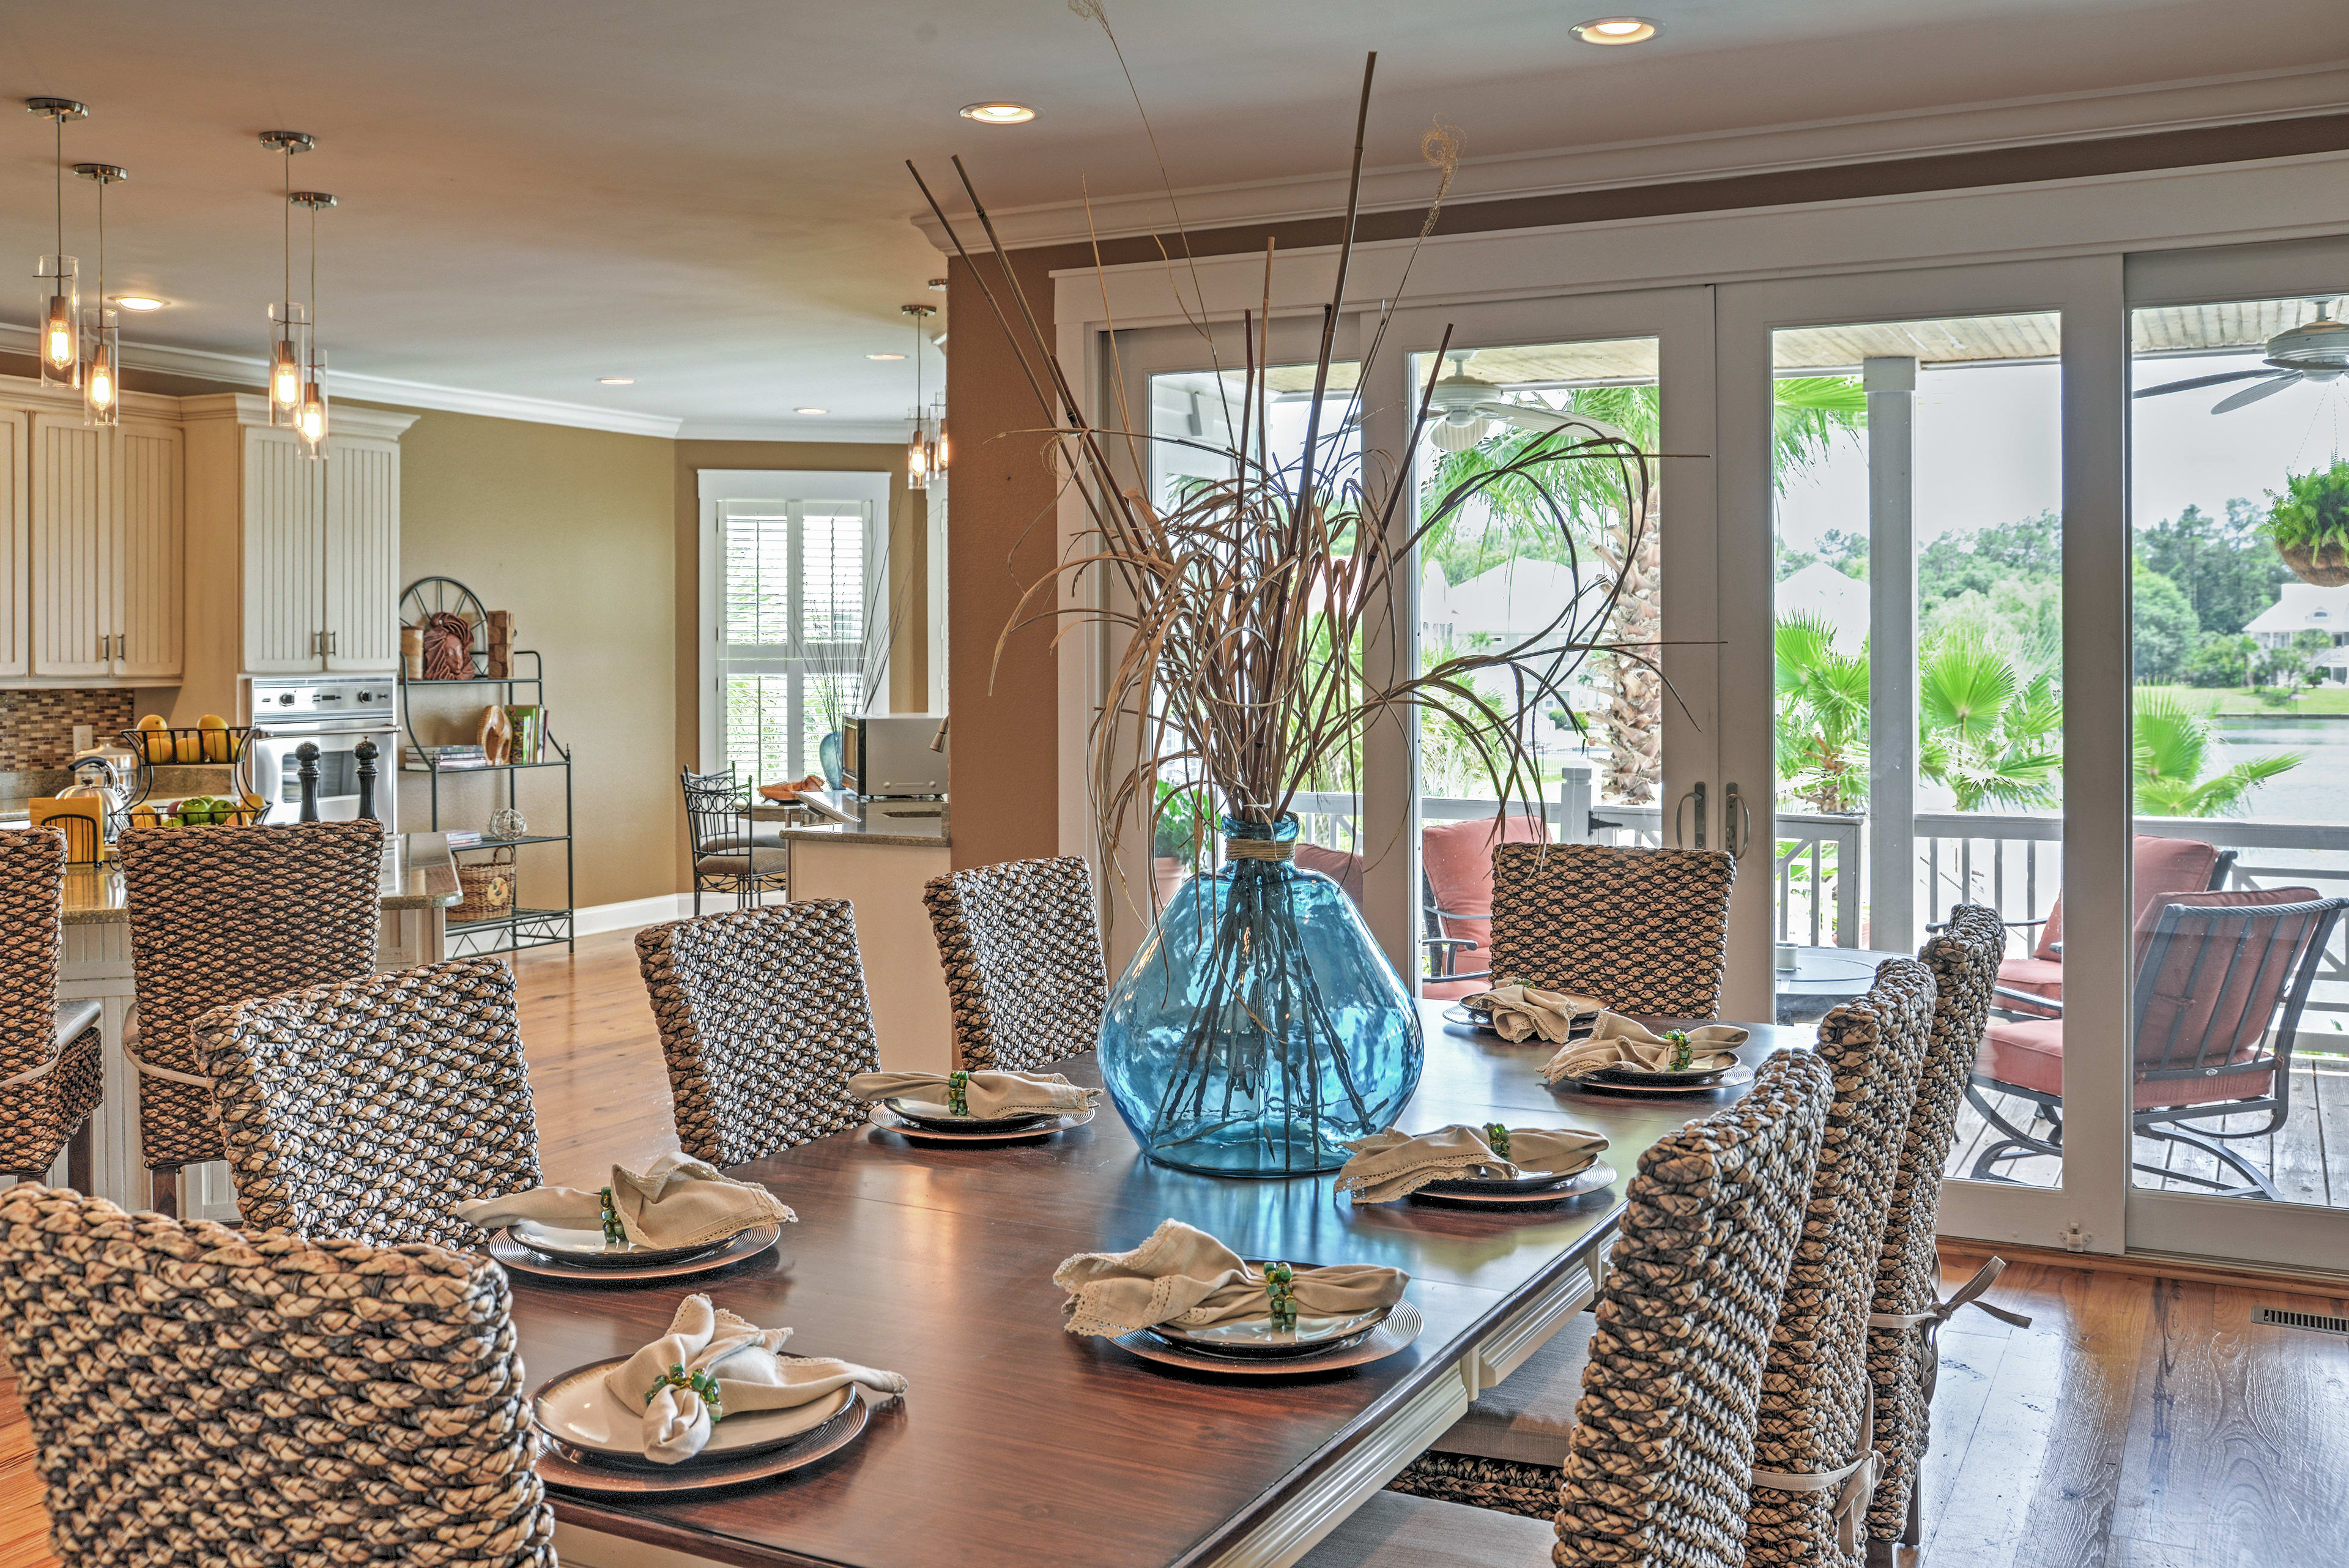 Special memories will be made at the magnificent dining room table.